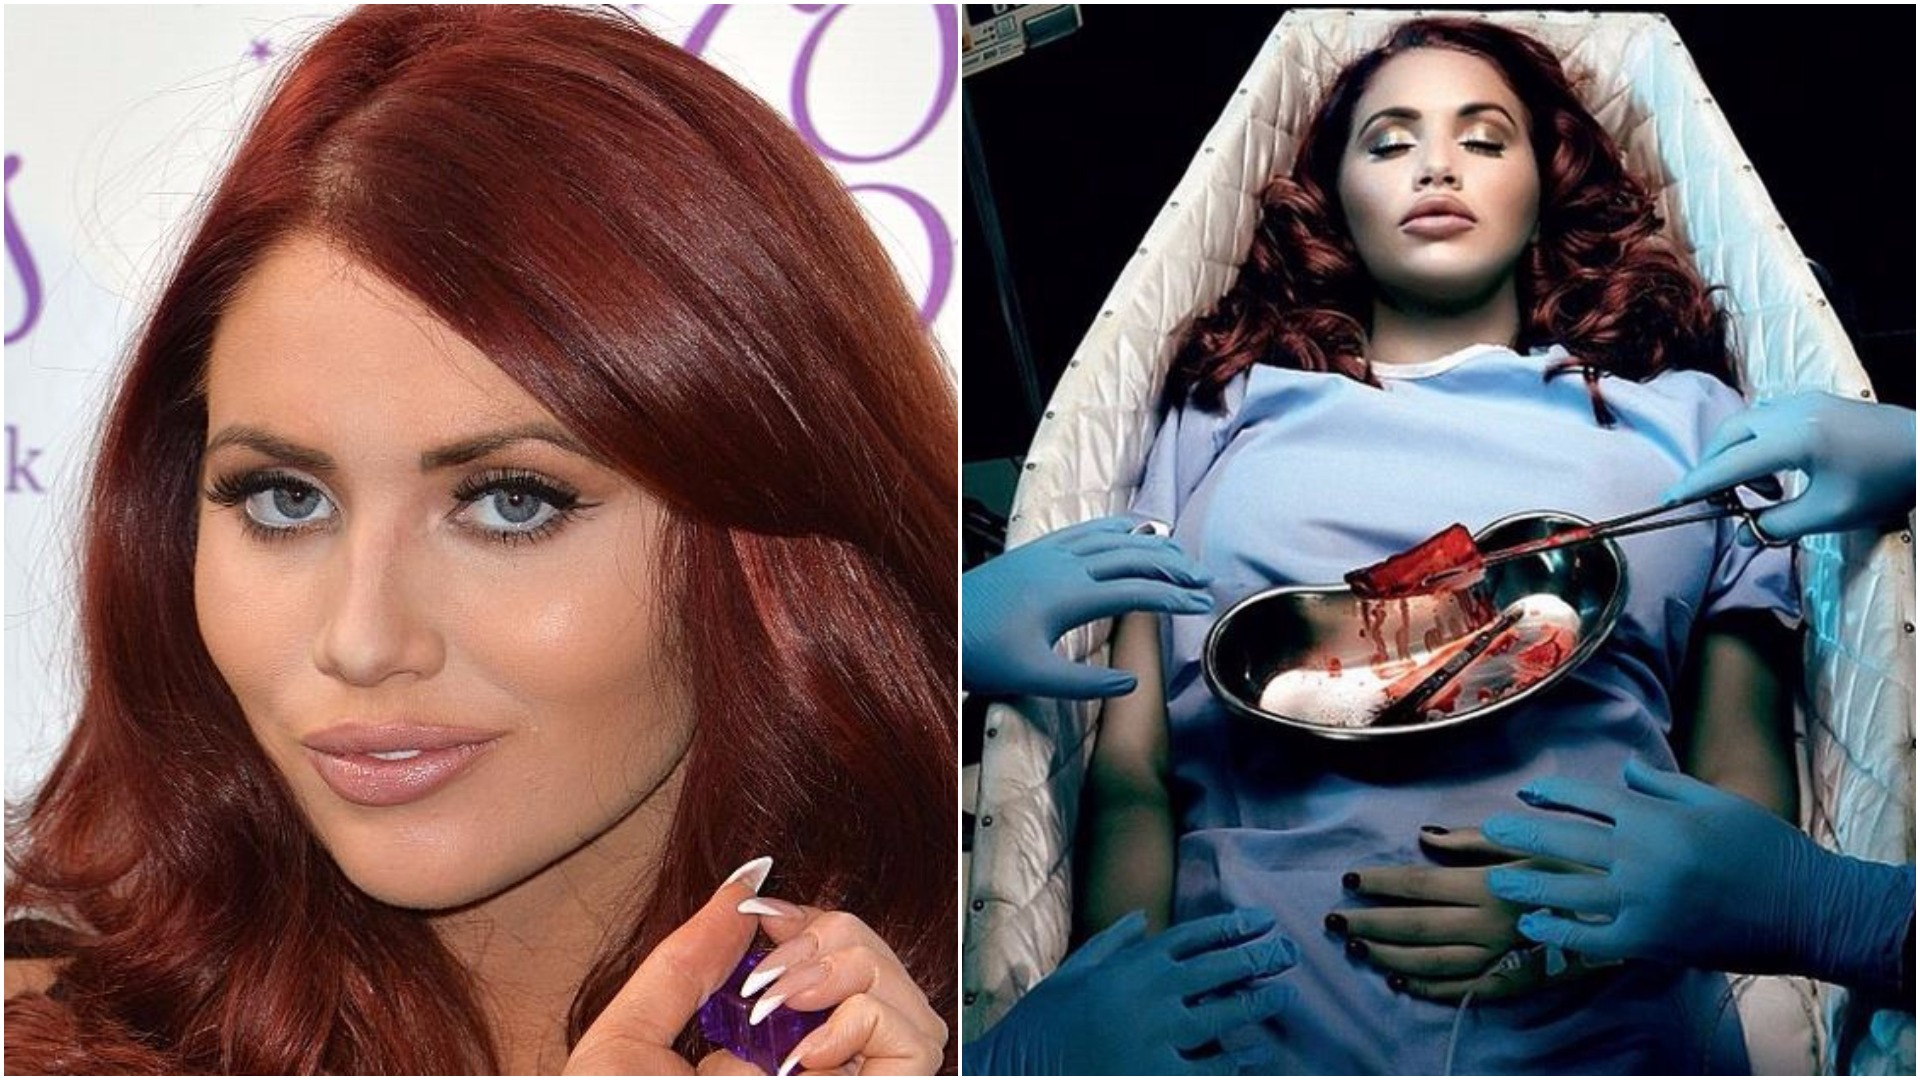 Amy Childs defends her 'hypocritical' appearance in a shocking anti-plastic surgery advert